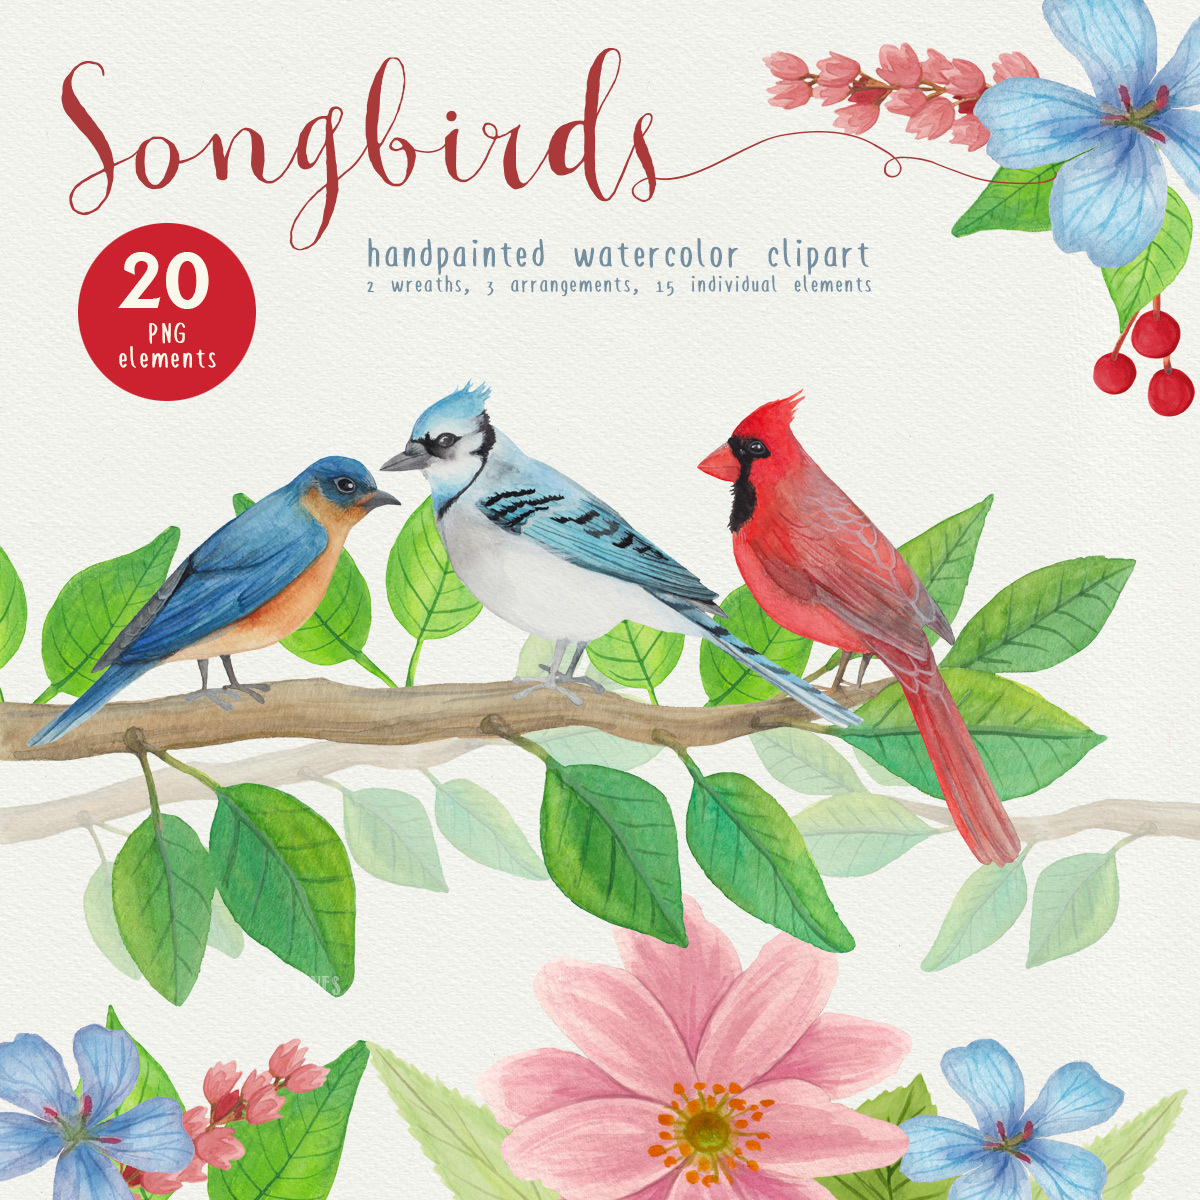 Song Birds Watercolor Clipart 00017